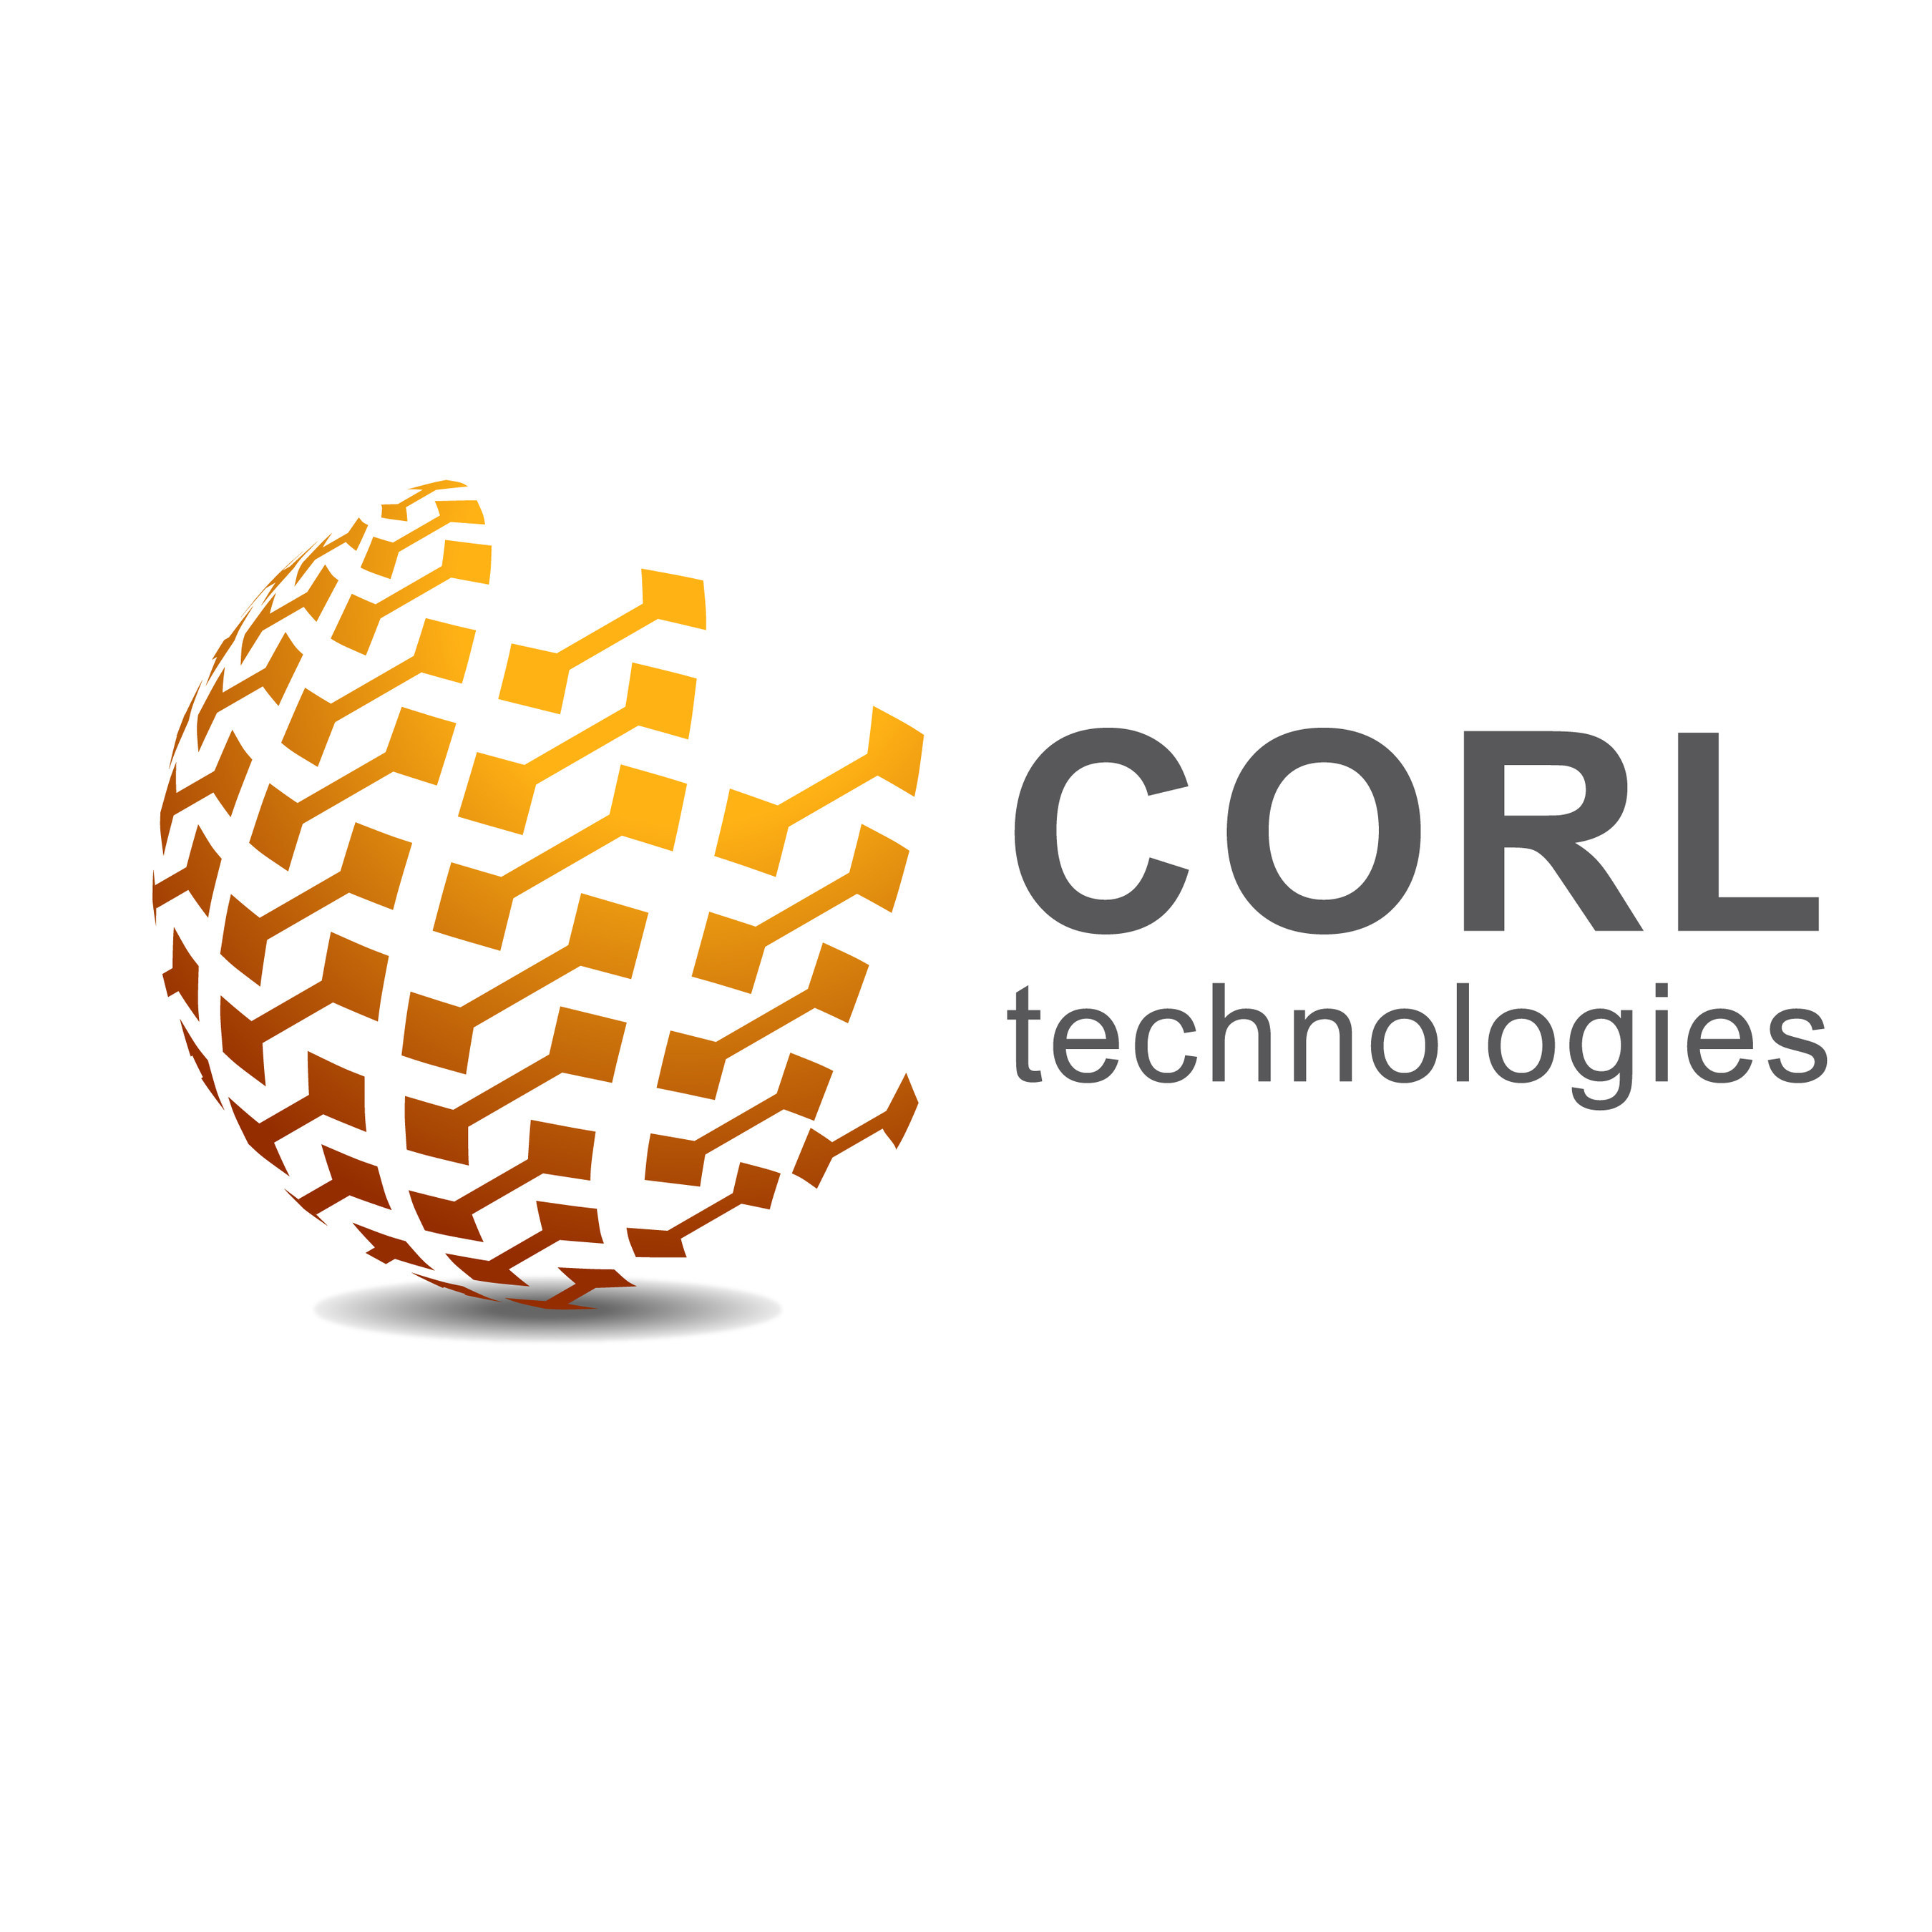 CORL Technologies in Atlanta is a leading provider of vendor security risk management solutions. CORL's Vendor Security Risk Management solutions are delivered as a managed service and are supported by expert research analysts who collaborate with an intelligence sharing community. With CORL, hospitals, health systems and payers can monitor risk with third-party vendors, ease compliance audits, and improve executive communications & risk-analytics reporting. Visit CORL at www.vendorsecurity.com